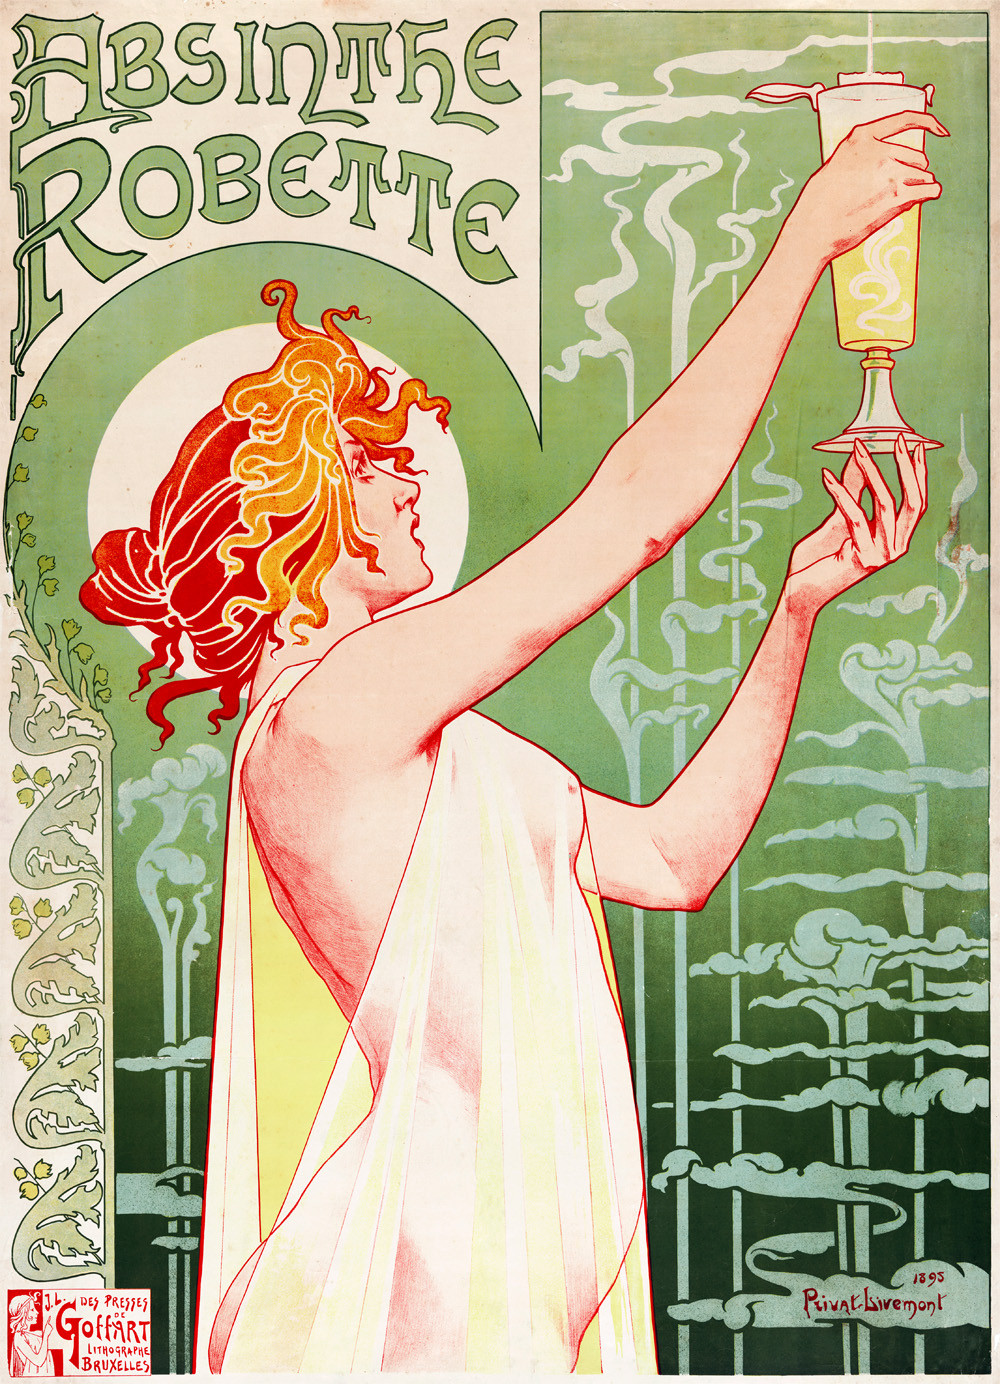 8 h.privat-livemont absinthes robette